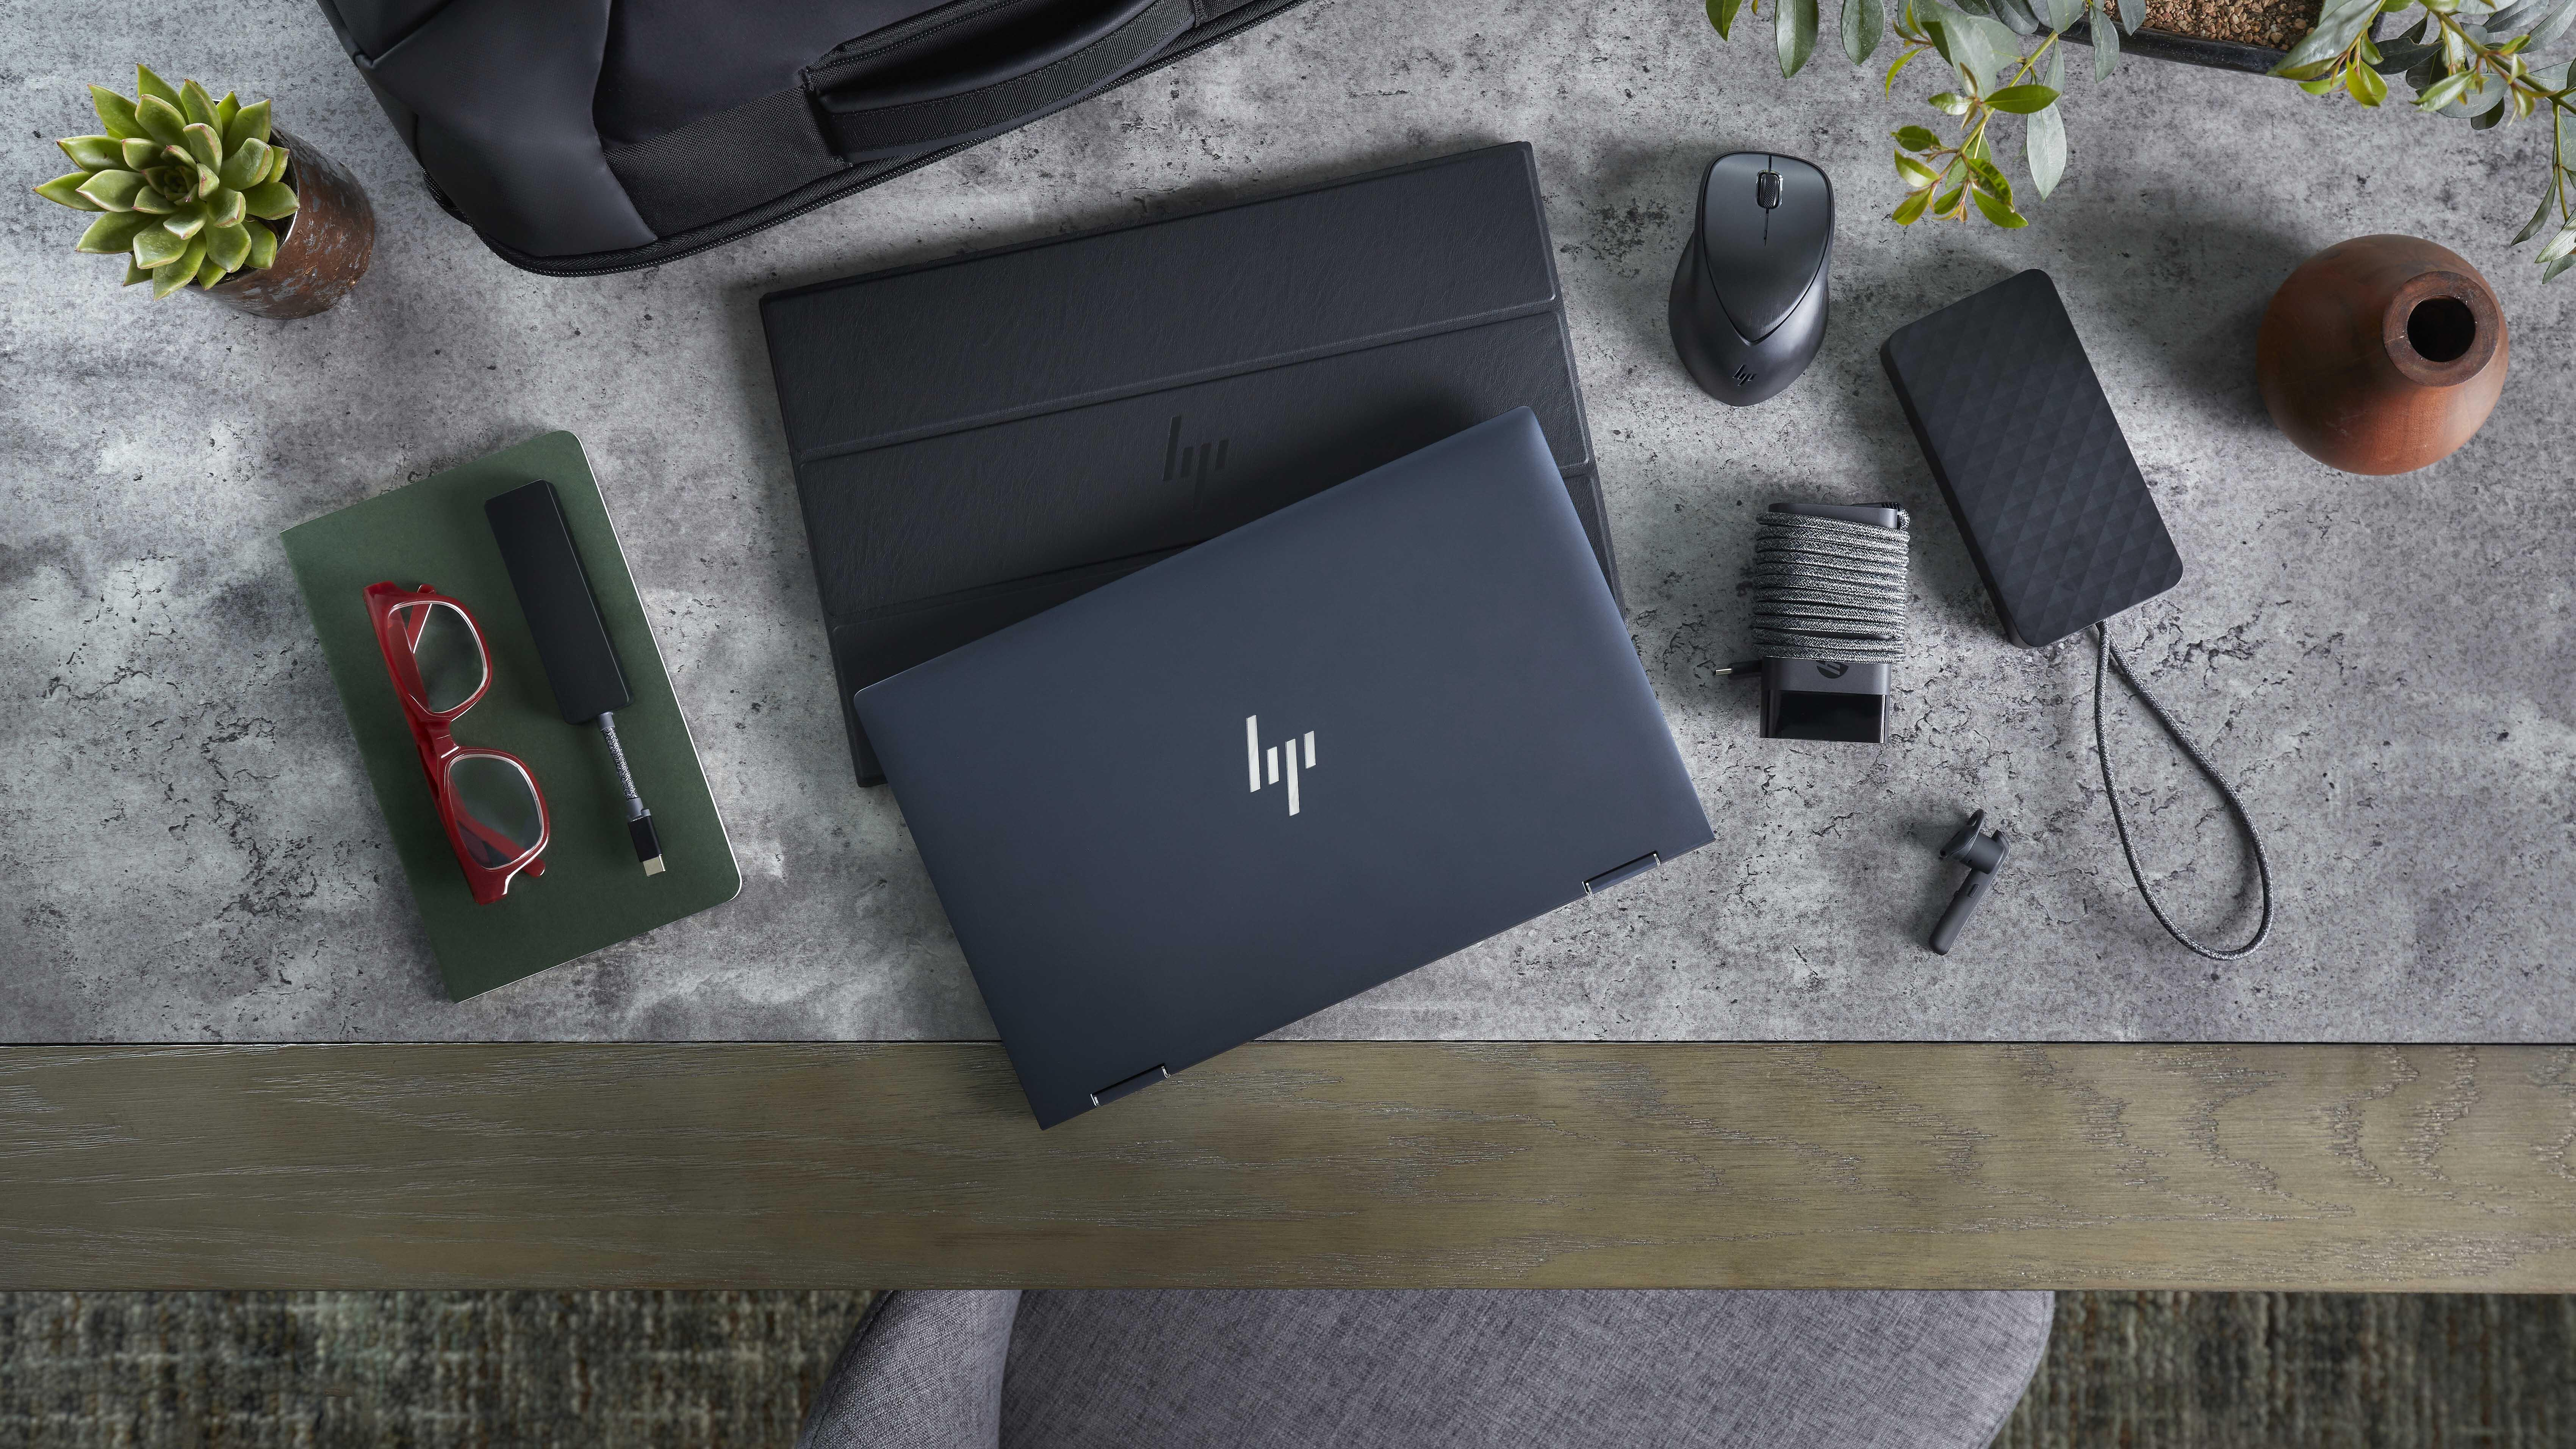 HP Elite Dragonfly G2 2-in-1 makes sure you don't lose it or your wireless  connection - CNET